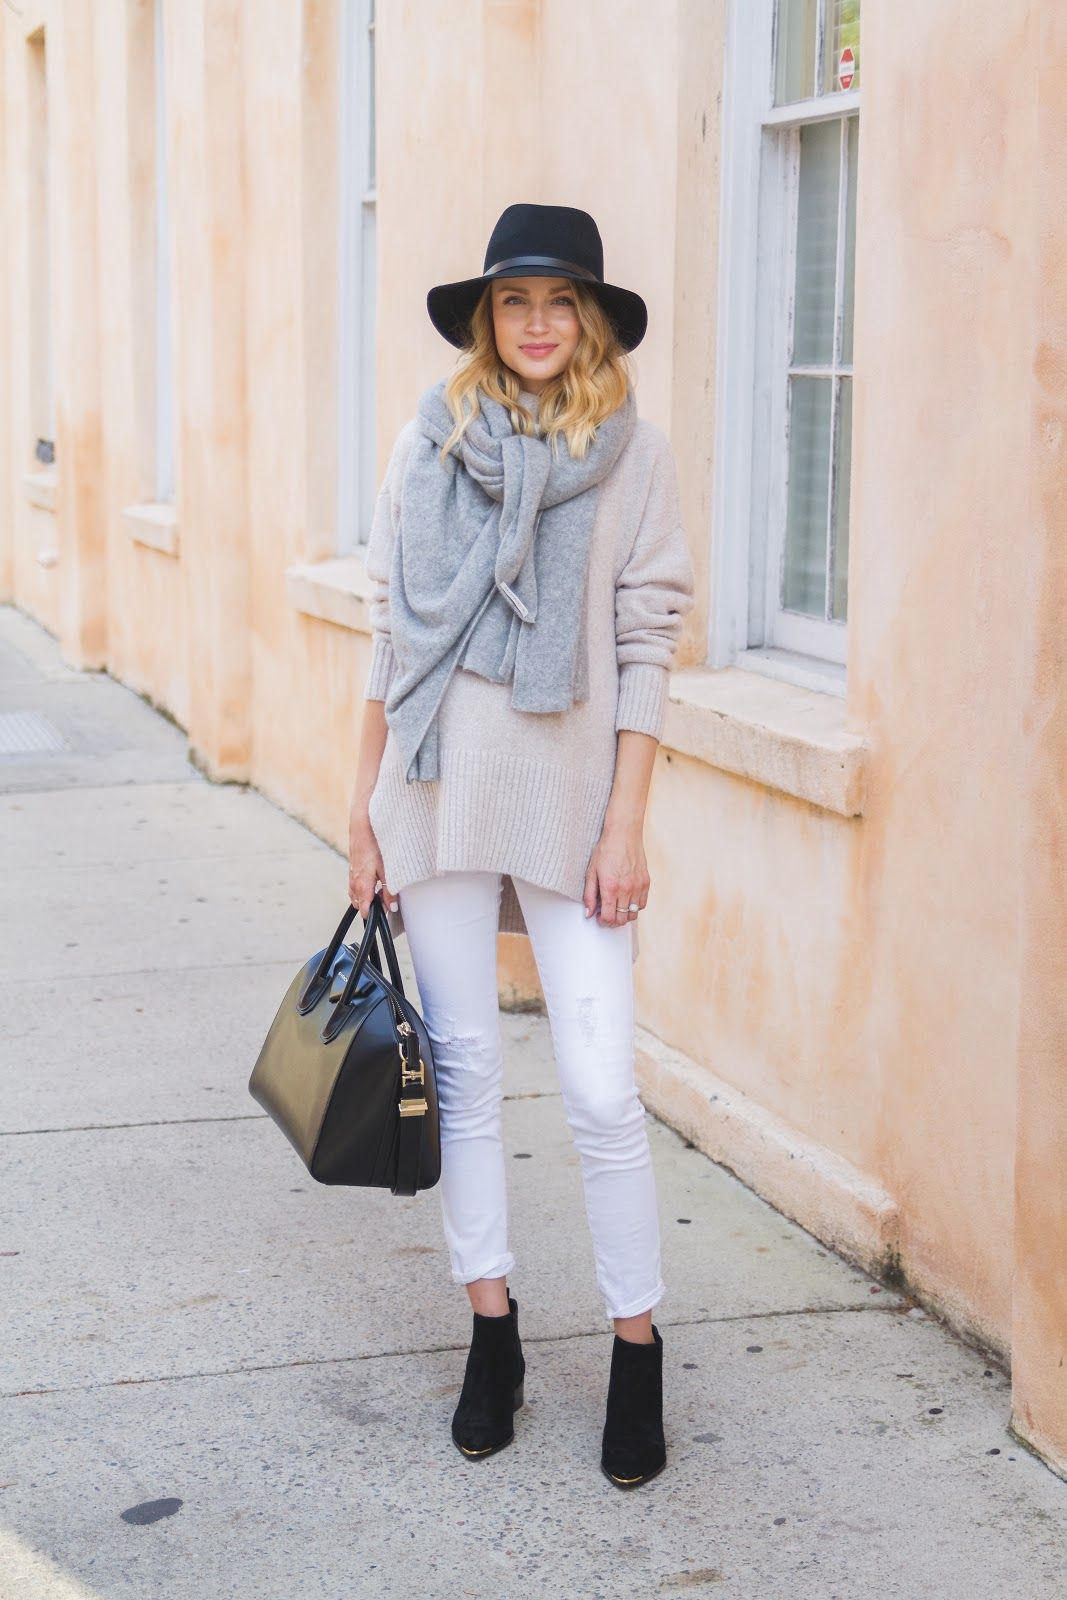 Little Blonde Book by Taylor Morgan | A Life and Style Blog : Wrapped In Neutral…